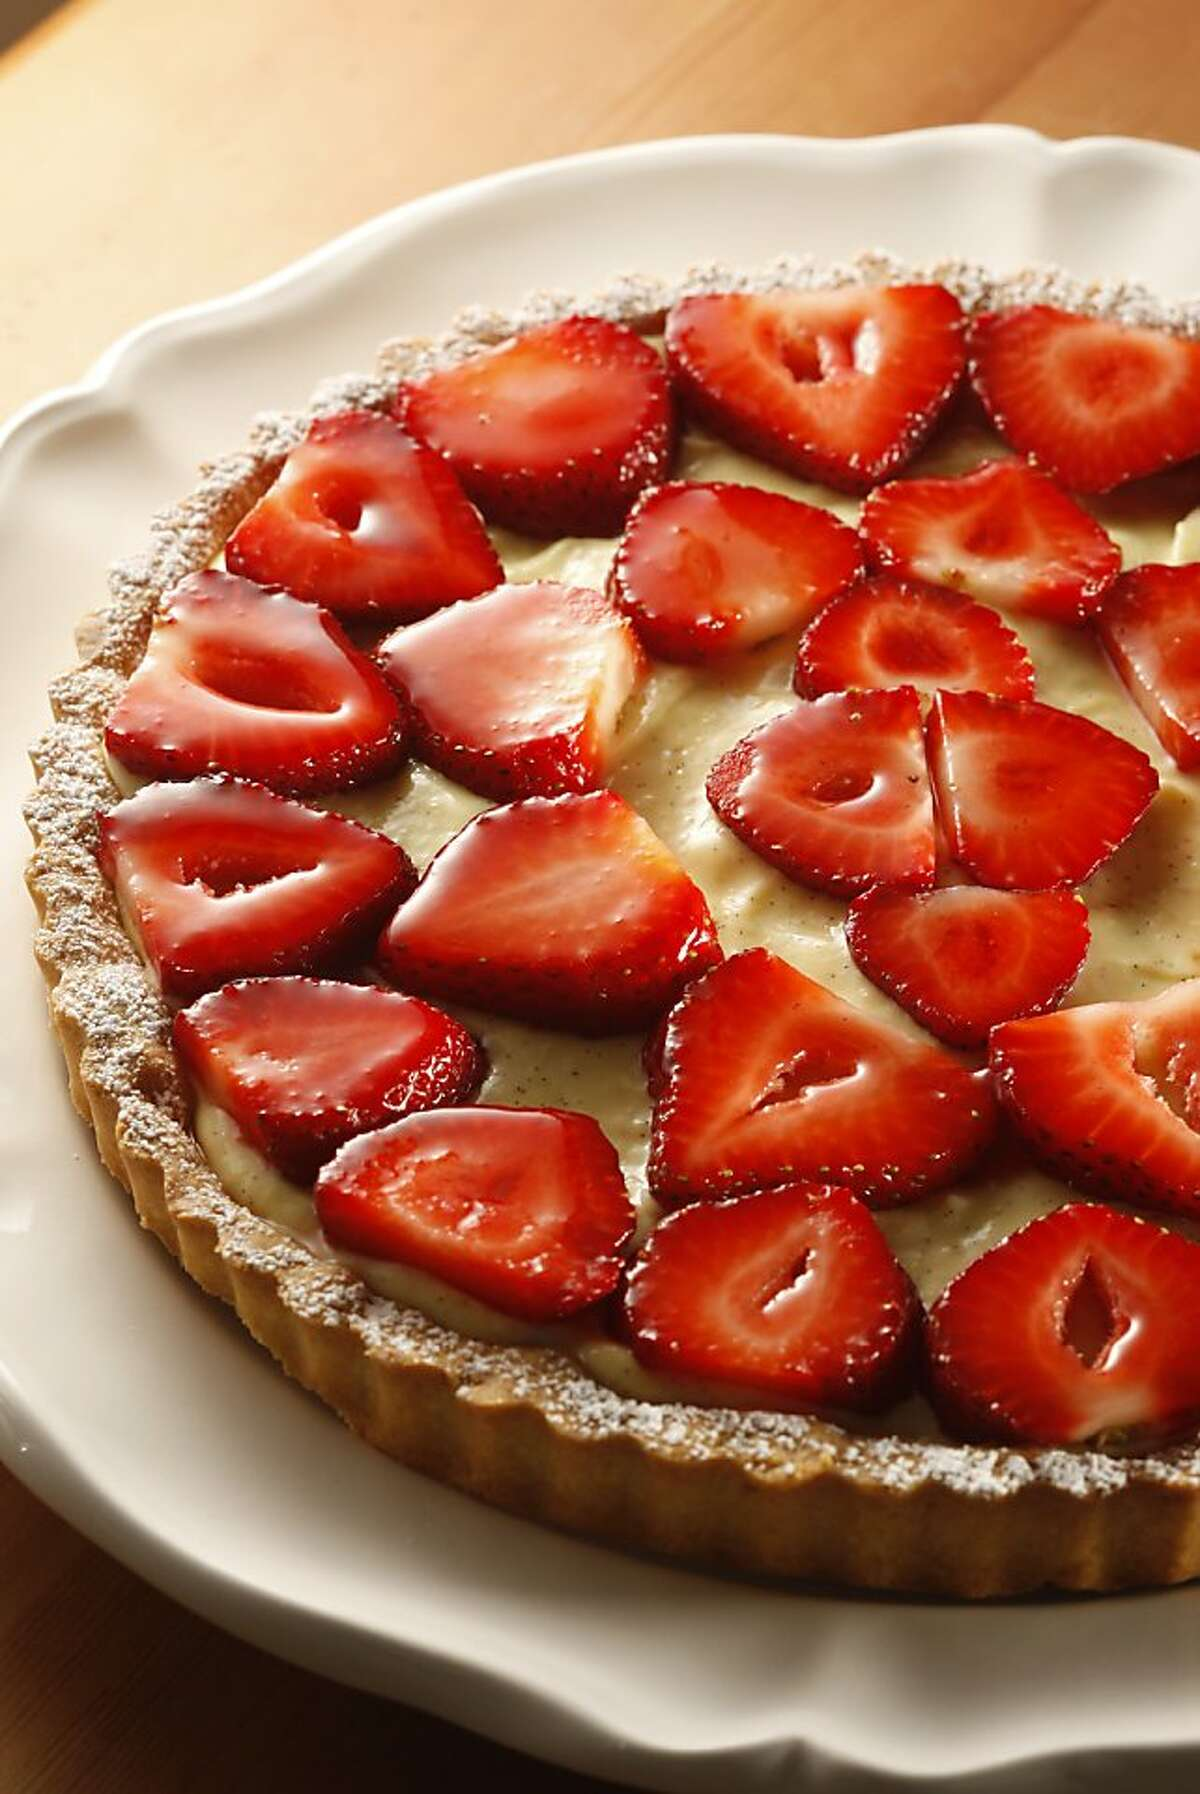 Fresh-as-Spring Strawberry Tart in San Francisco, Calif., on March 26, 2009. Food styled by Shannon Shafer.